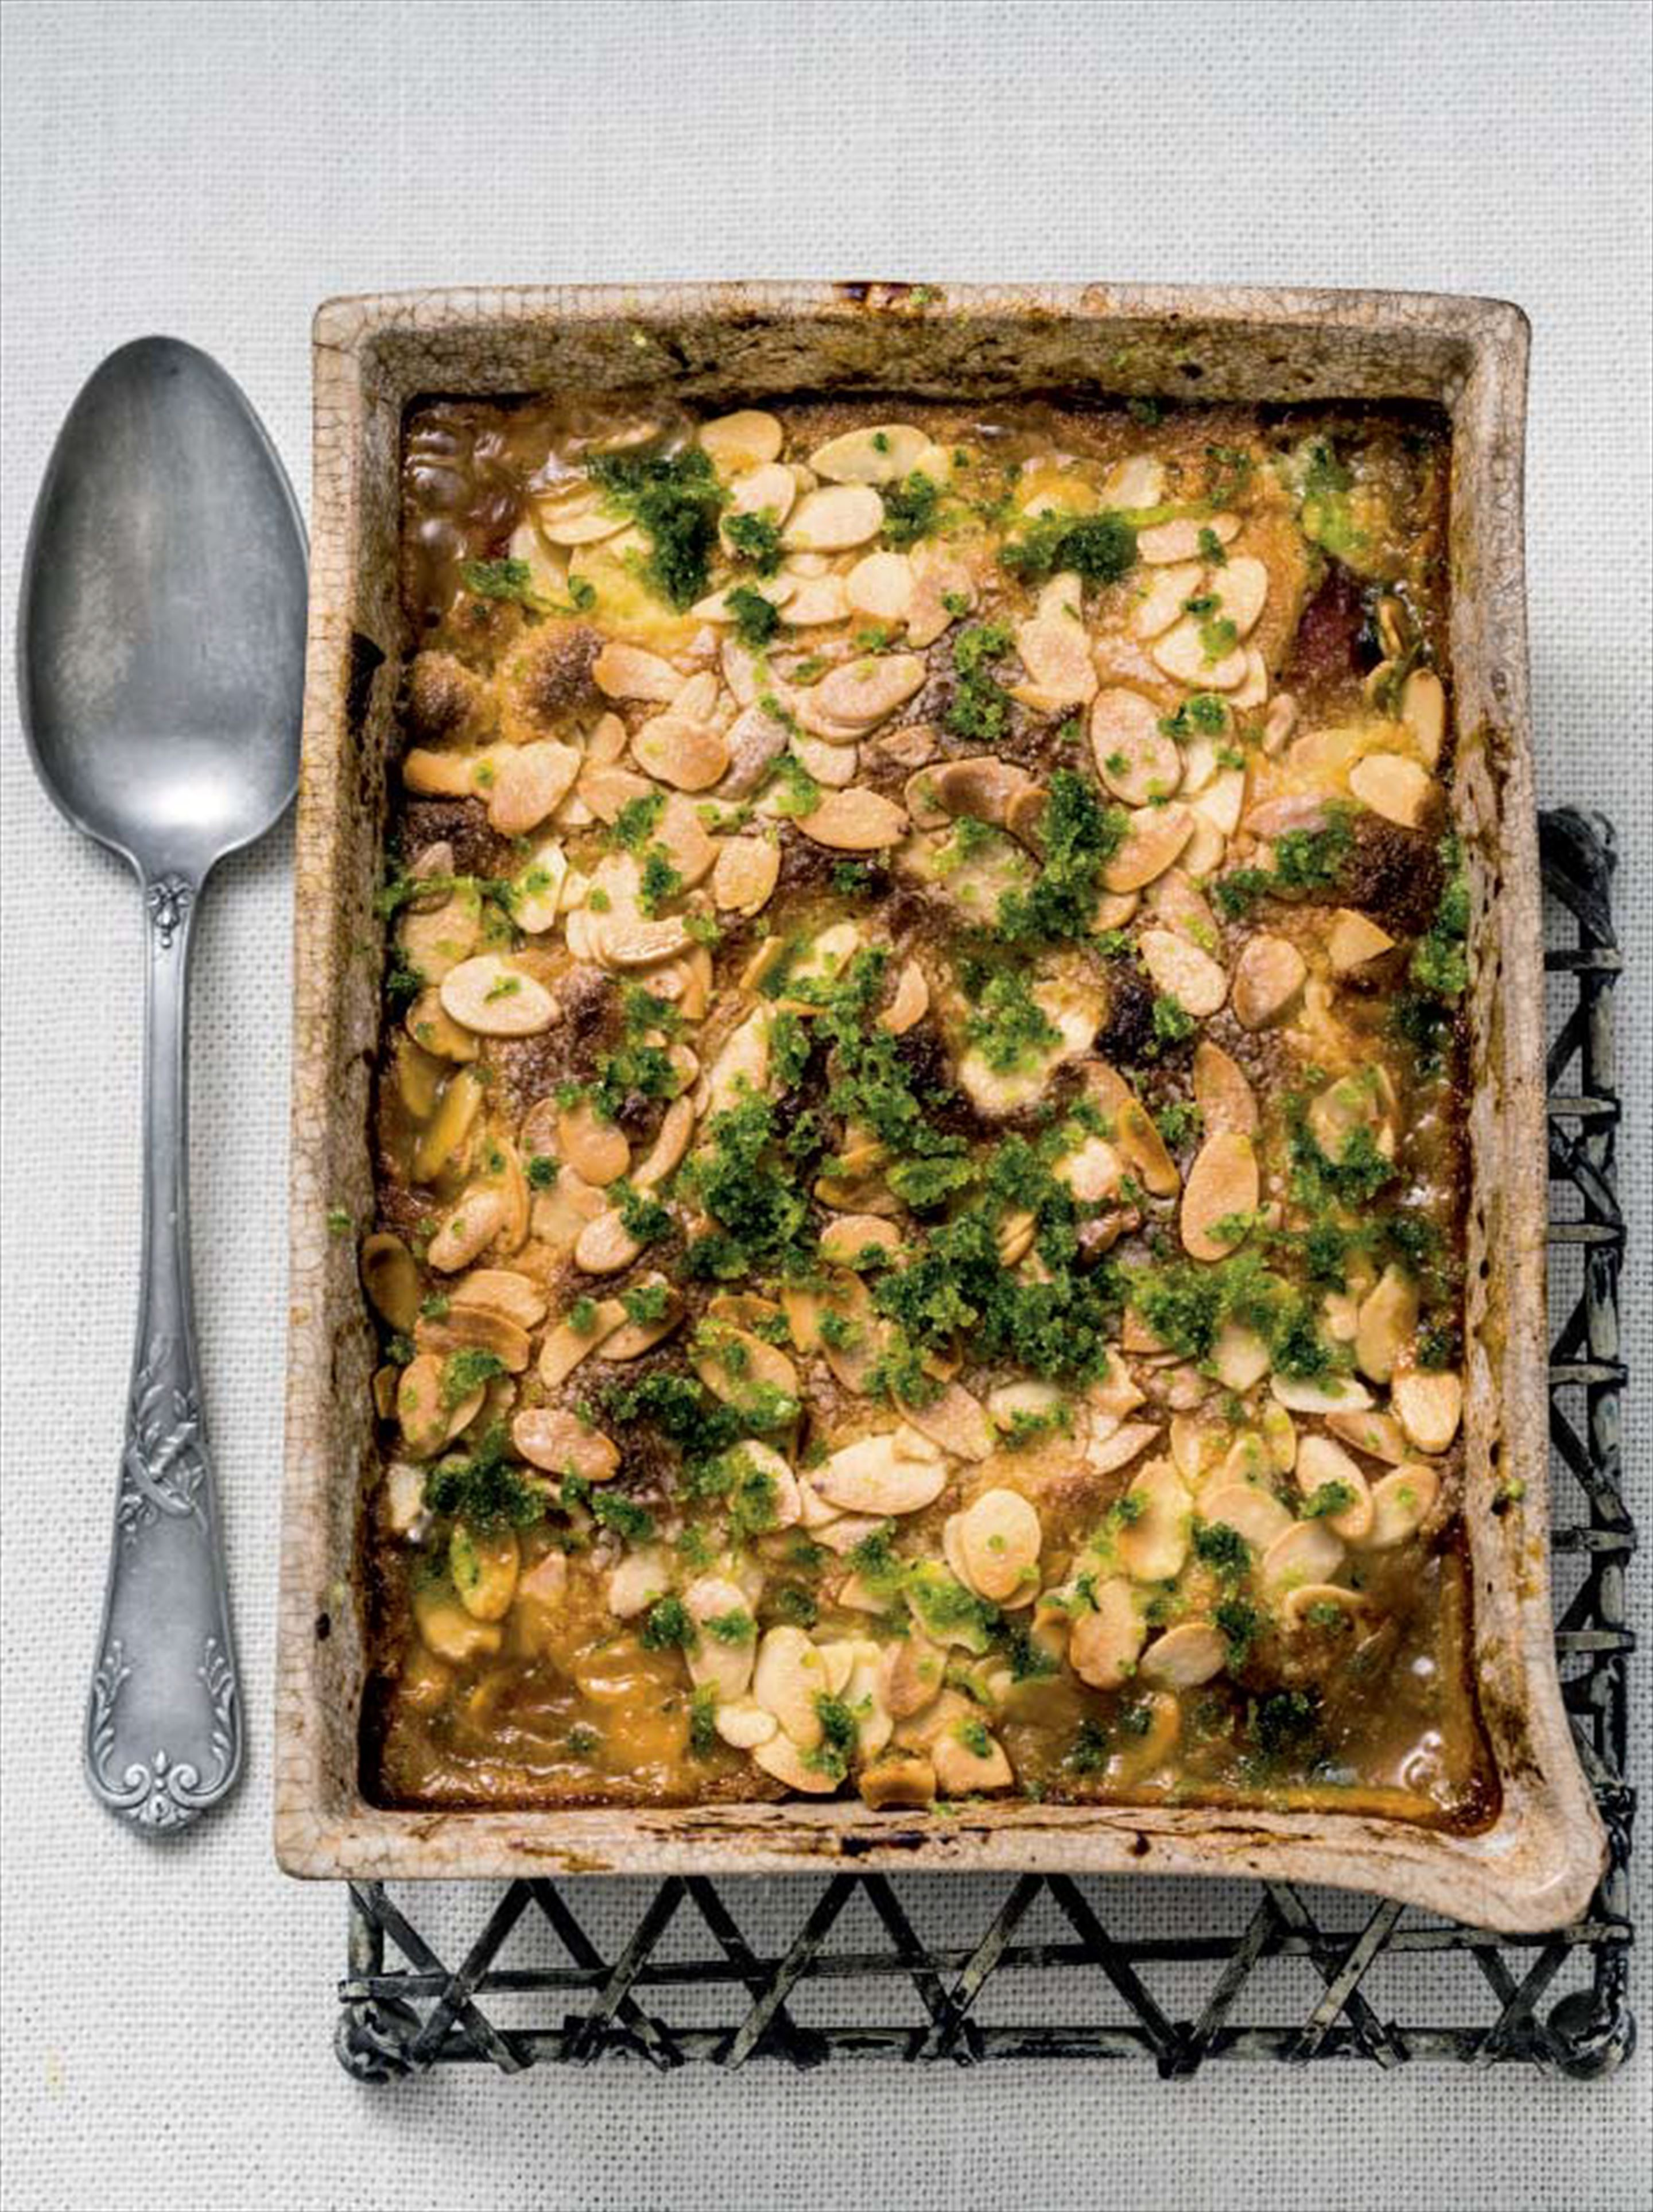 Peach & almond gratin with basil sugar